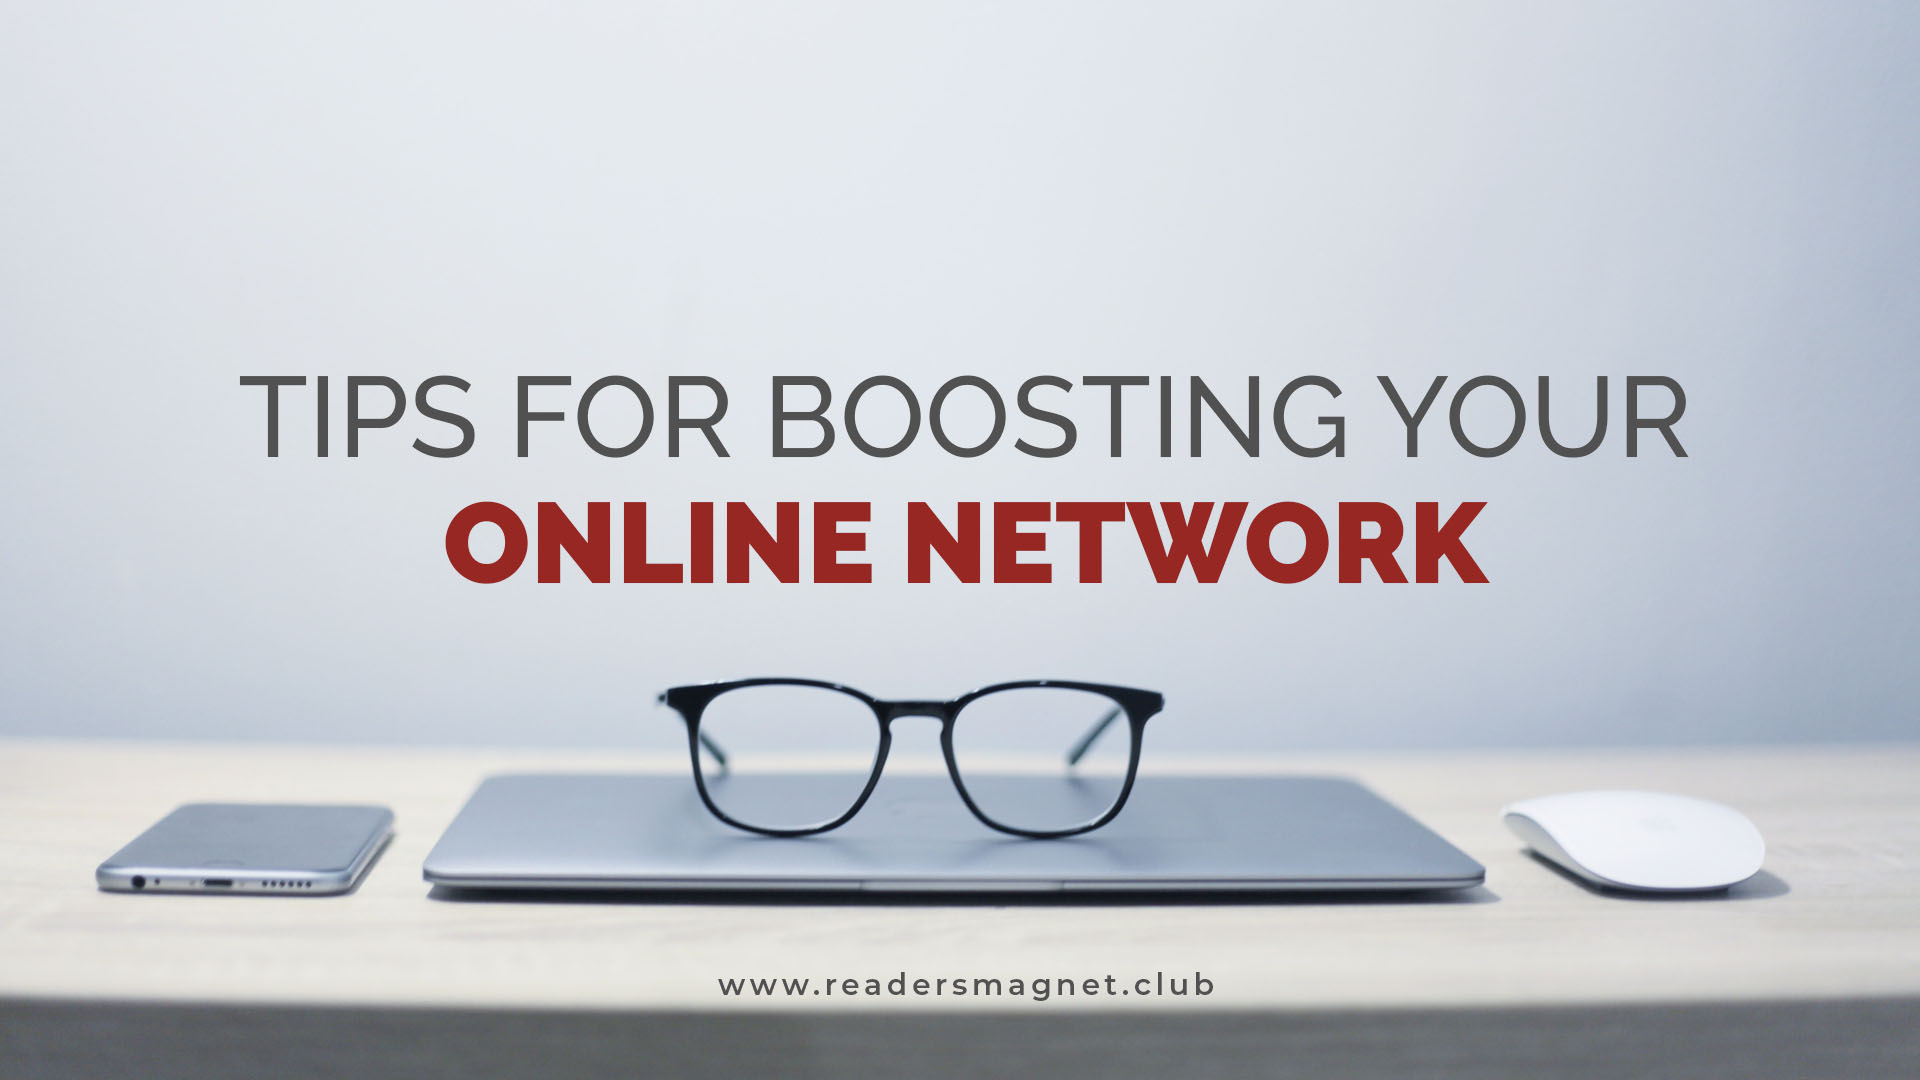 Tips for Boosting Your Online Network